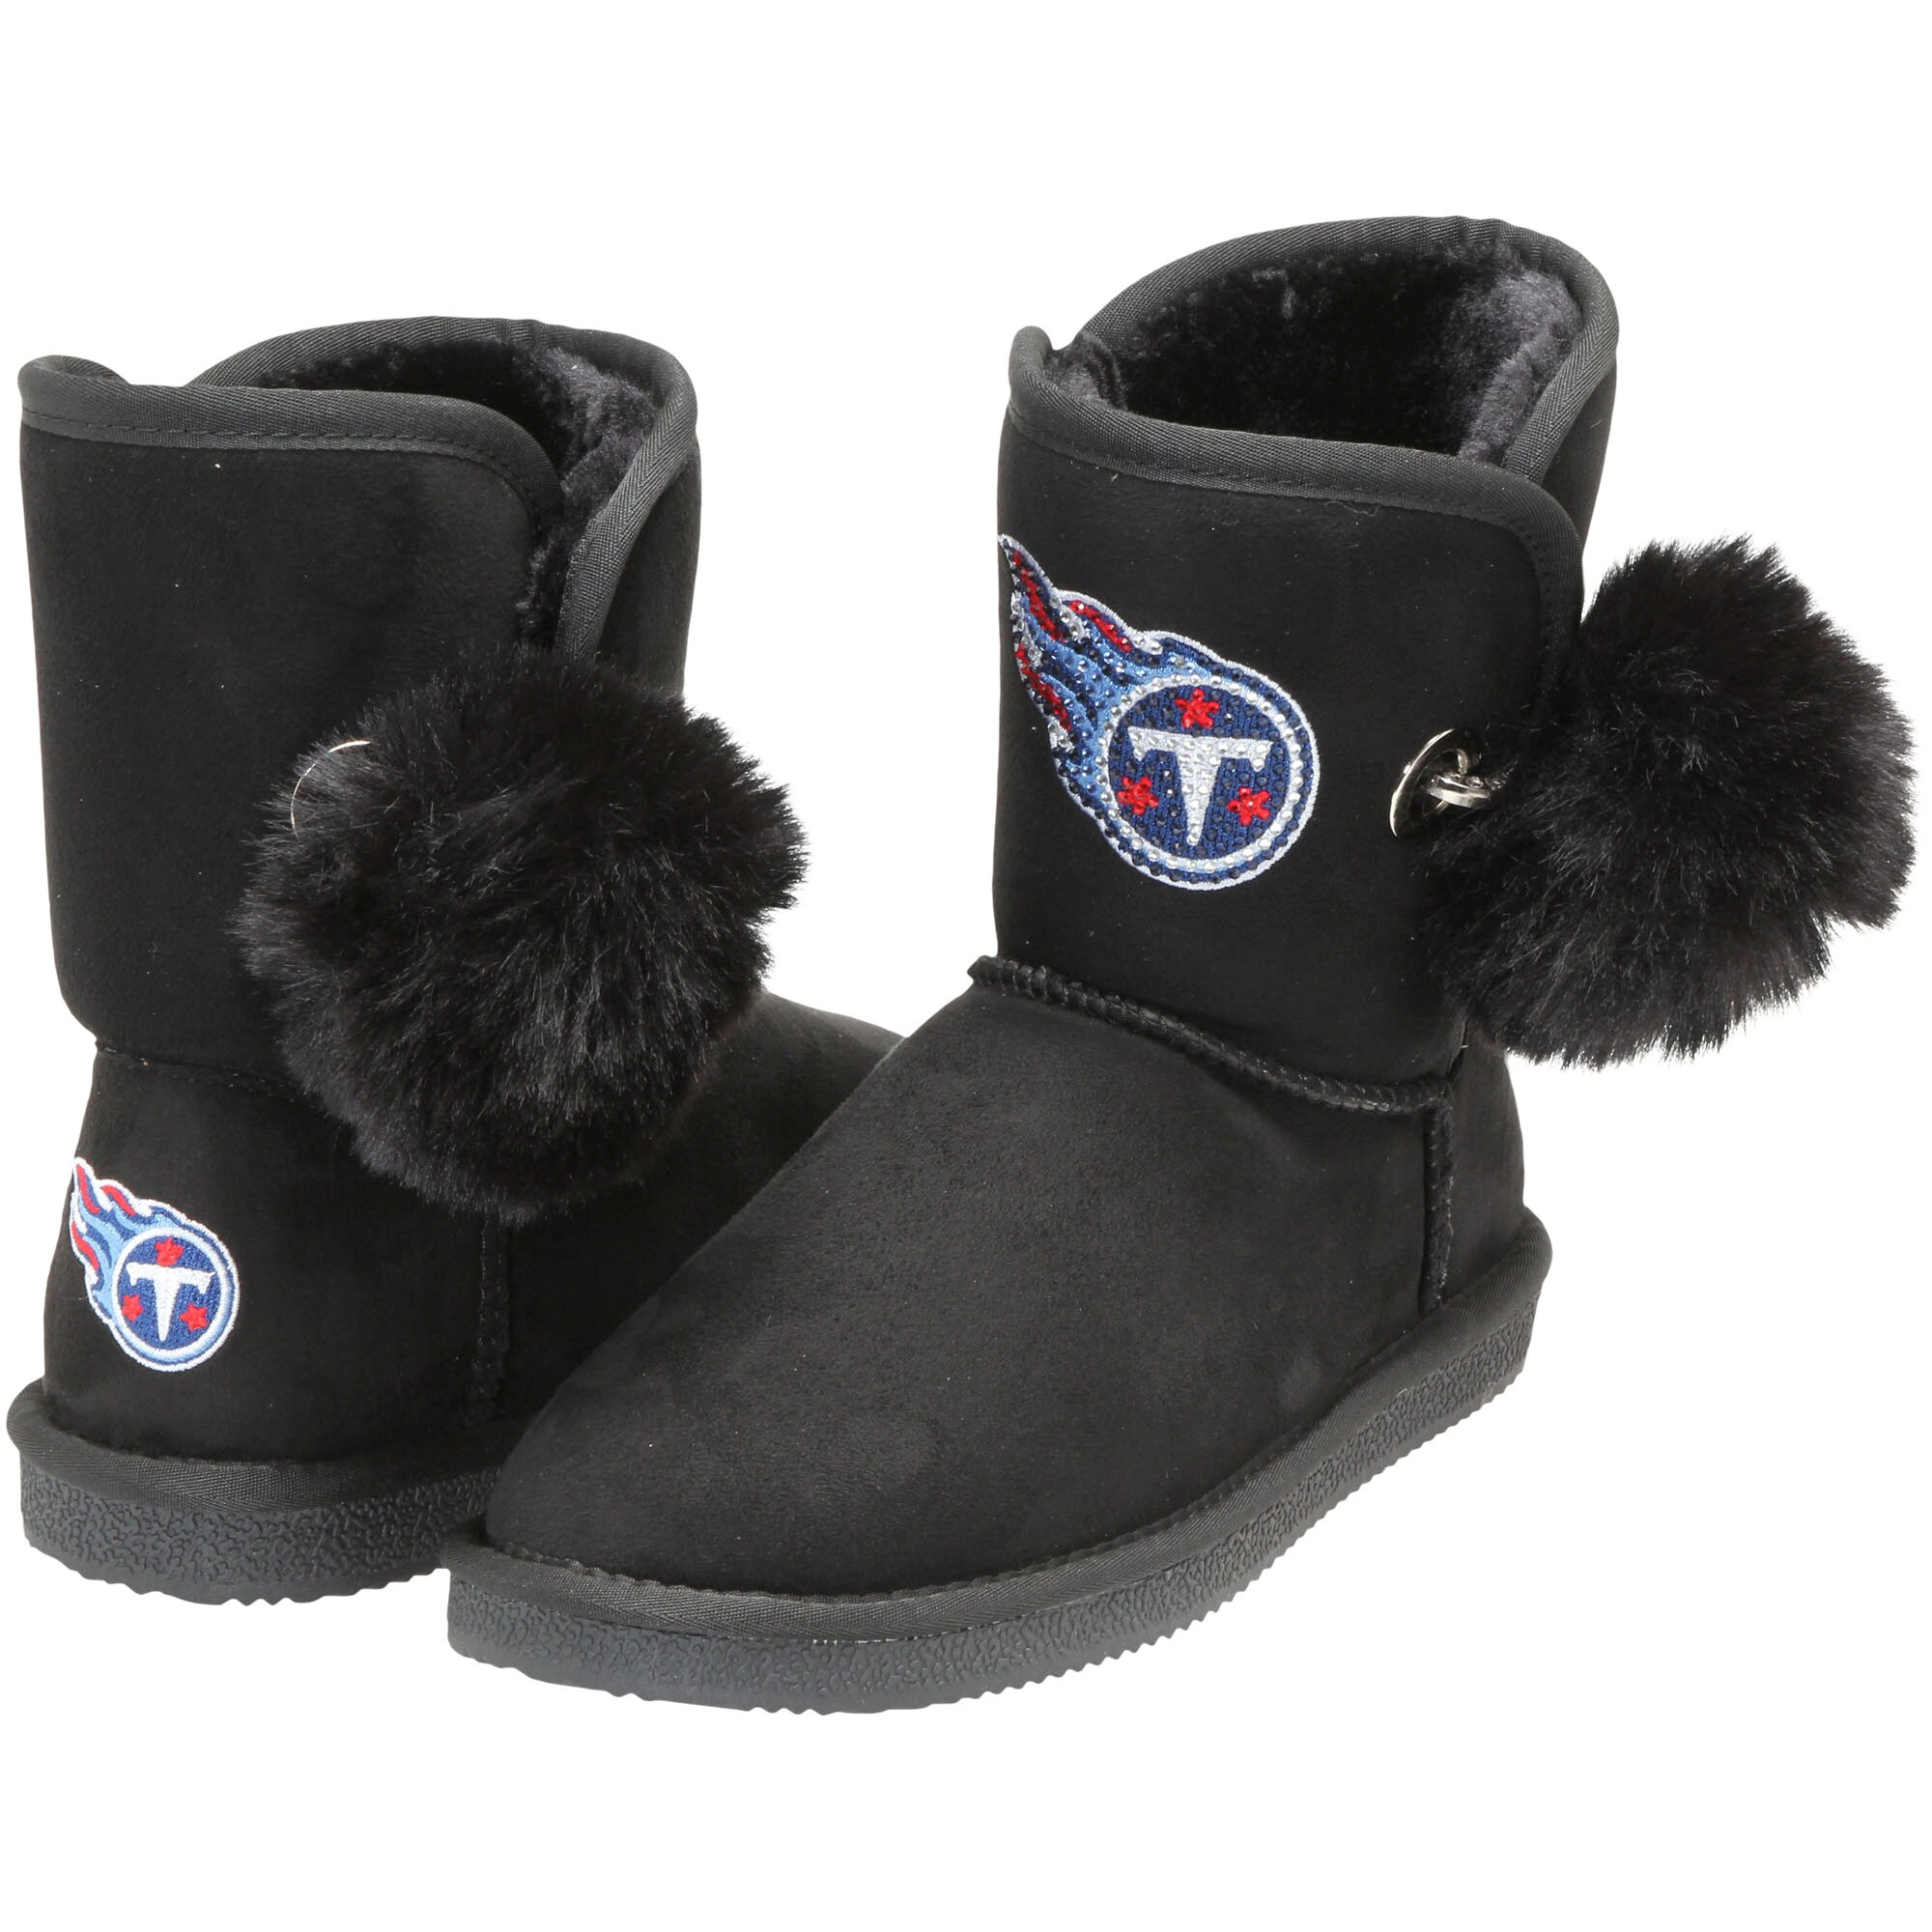 Tennessee Titans Cuce Women's The Fumble Faux Fur Boots - Black